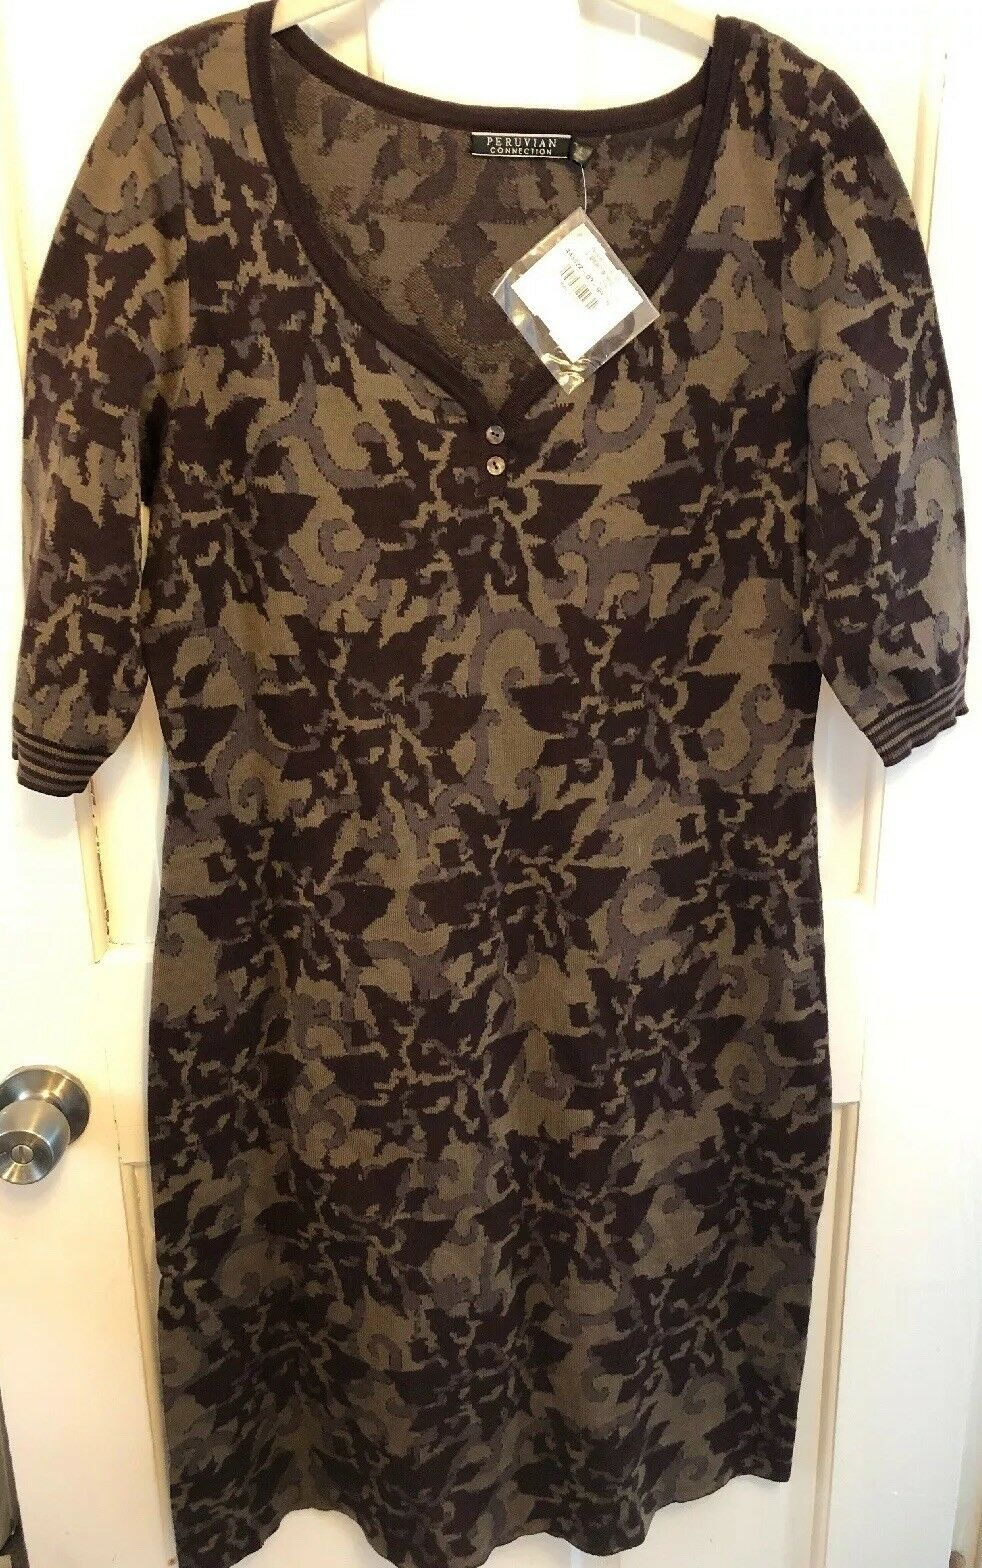 Nwt Perunian Connection Arboretum Dress L Pima Cotton